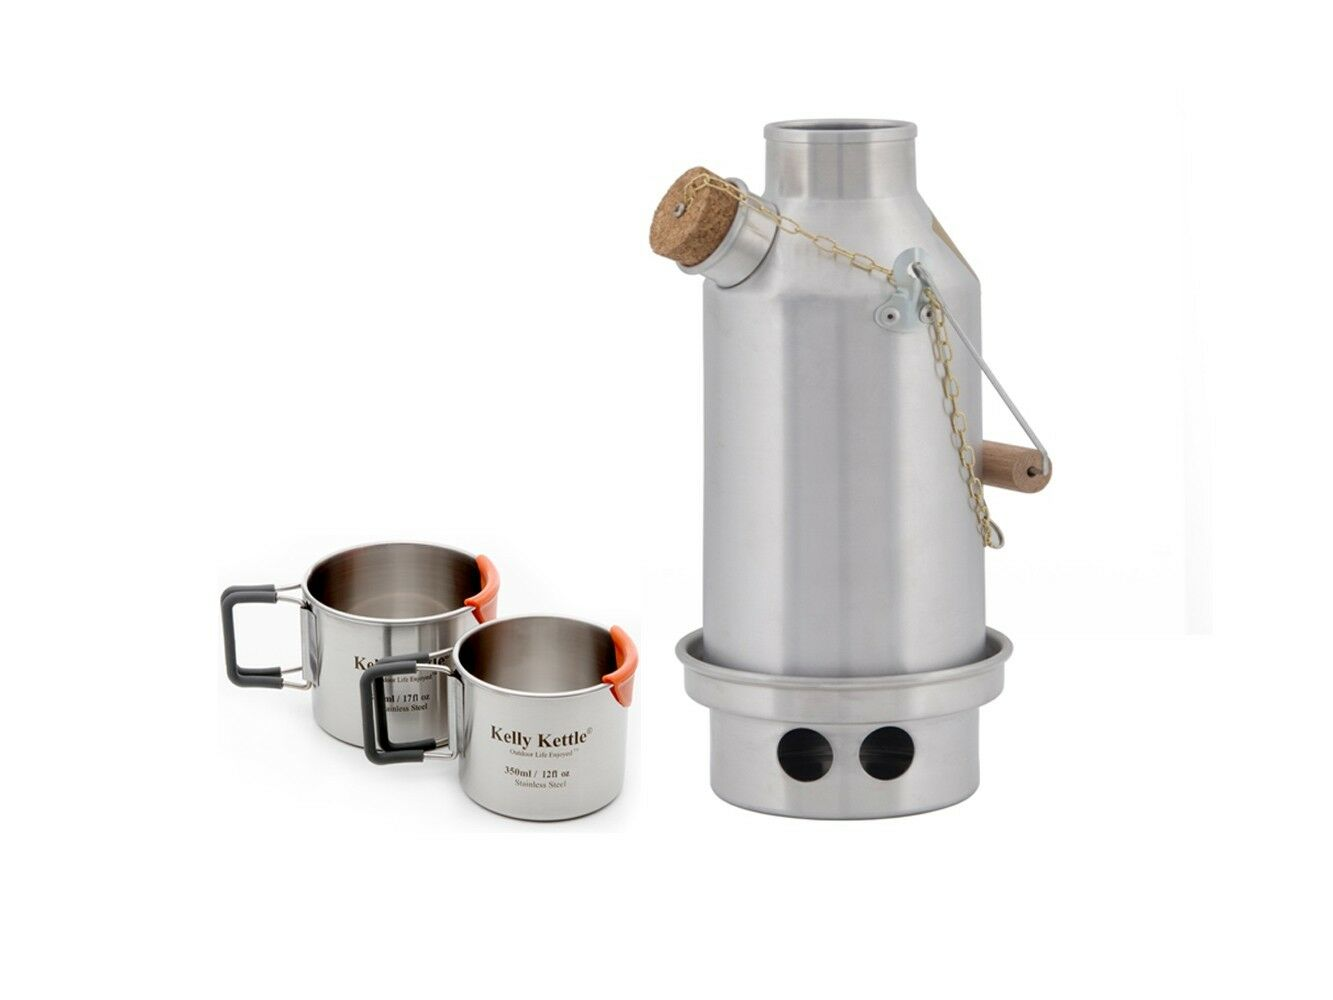 Stainless Trekker (0.6 litre) Kelly Kettle, Kettle, Kelly Kits etc. Wood/Multi Fuel Camp Stove 688dc6